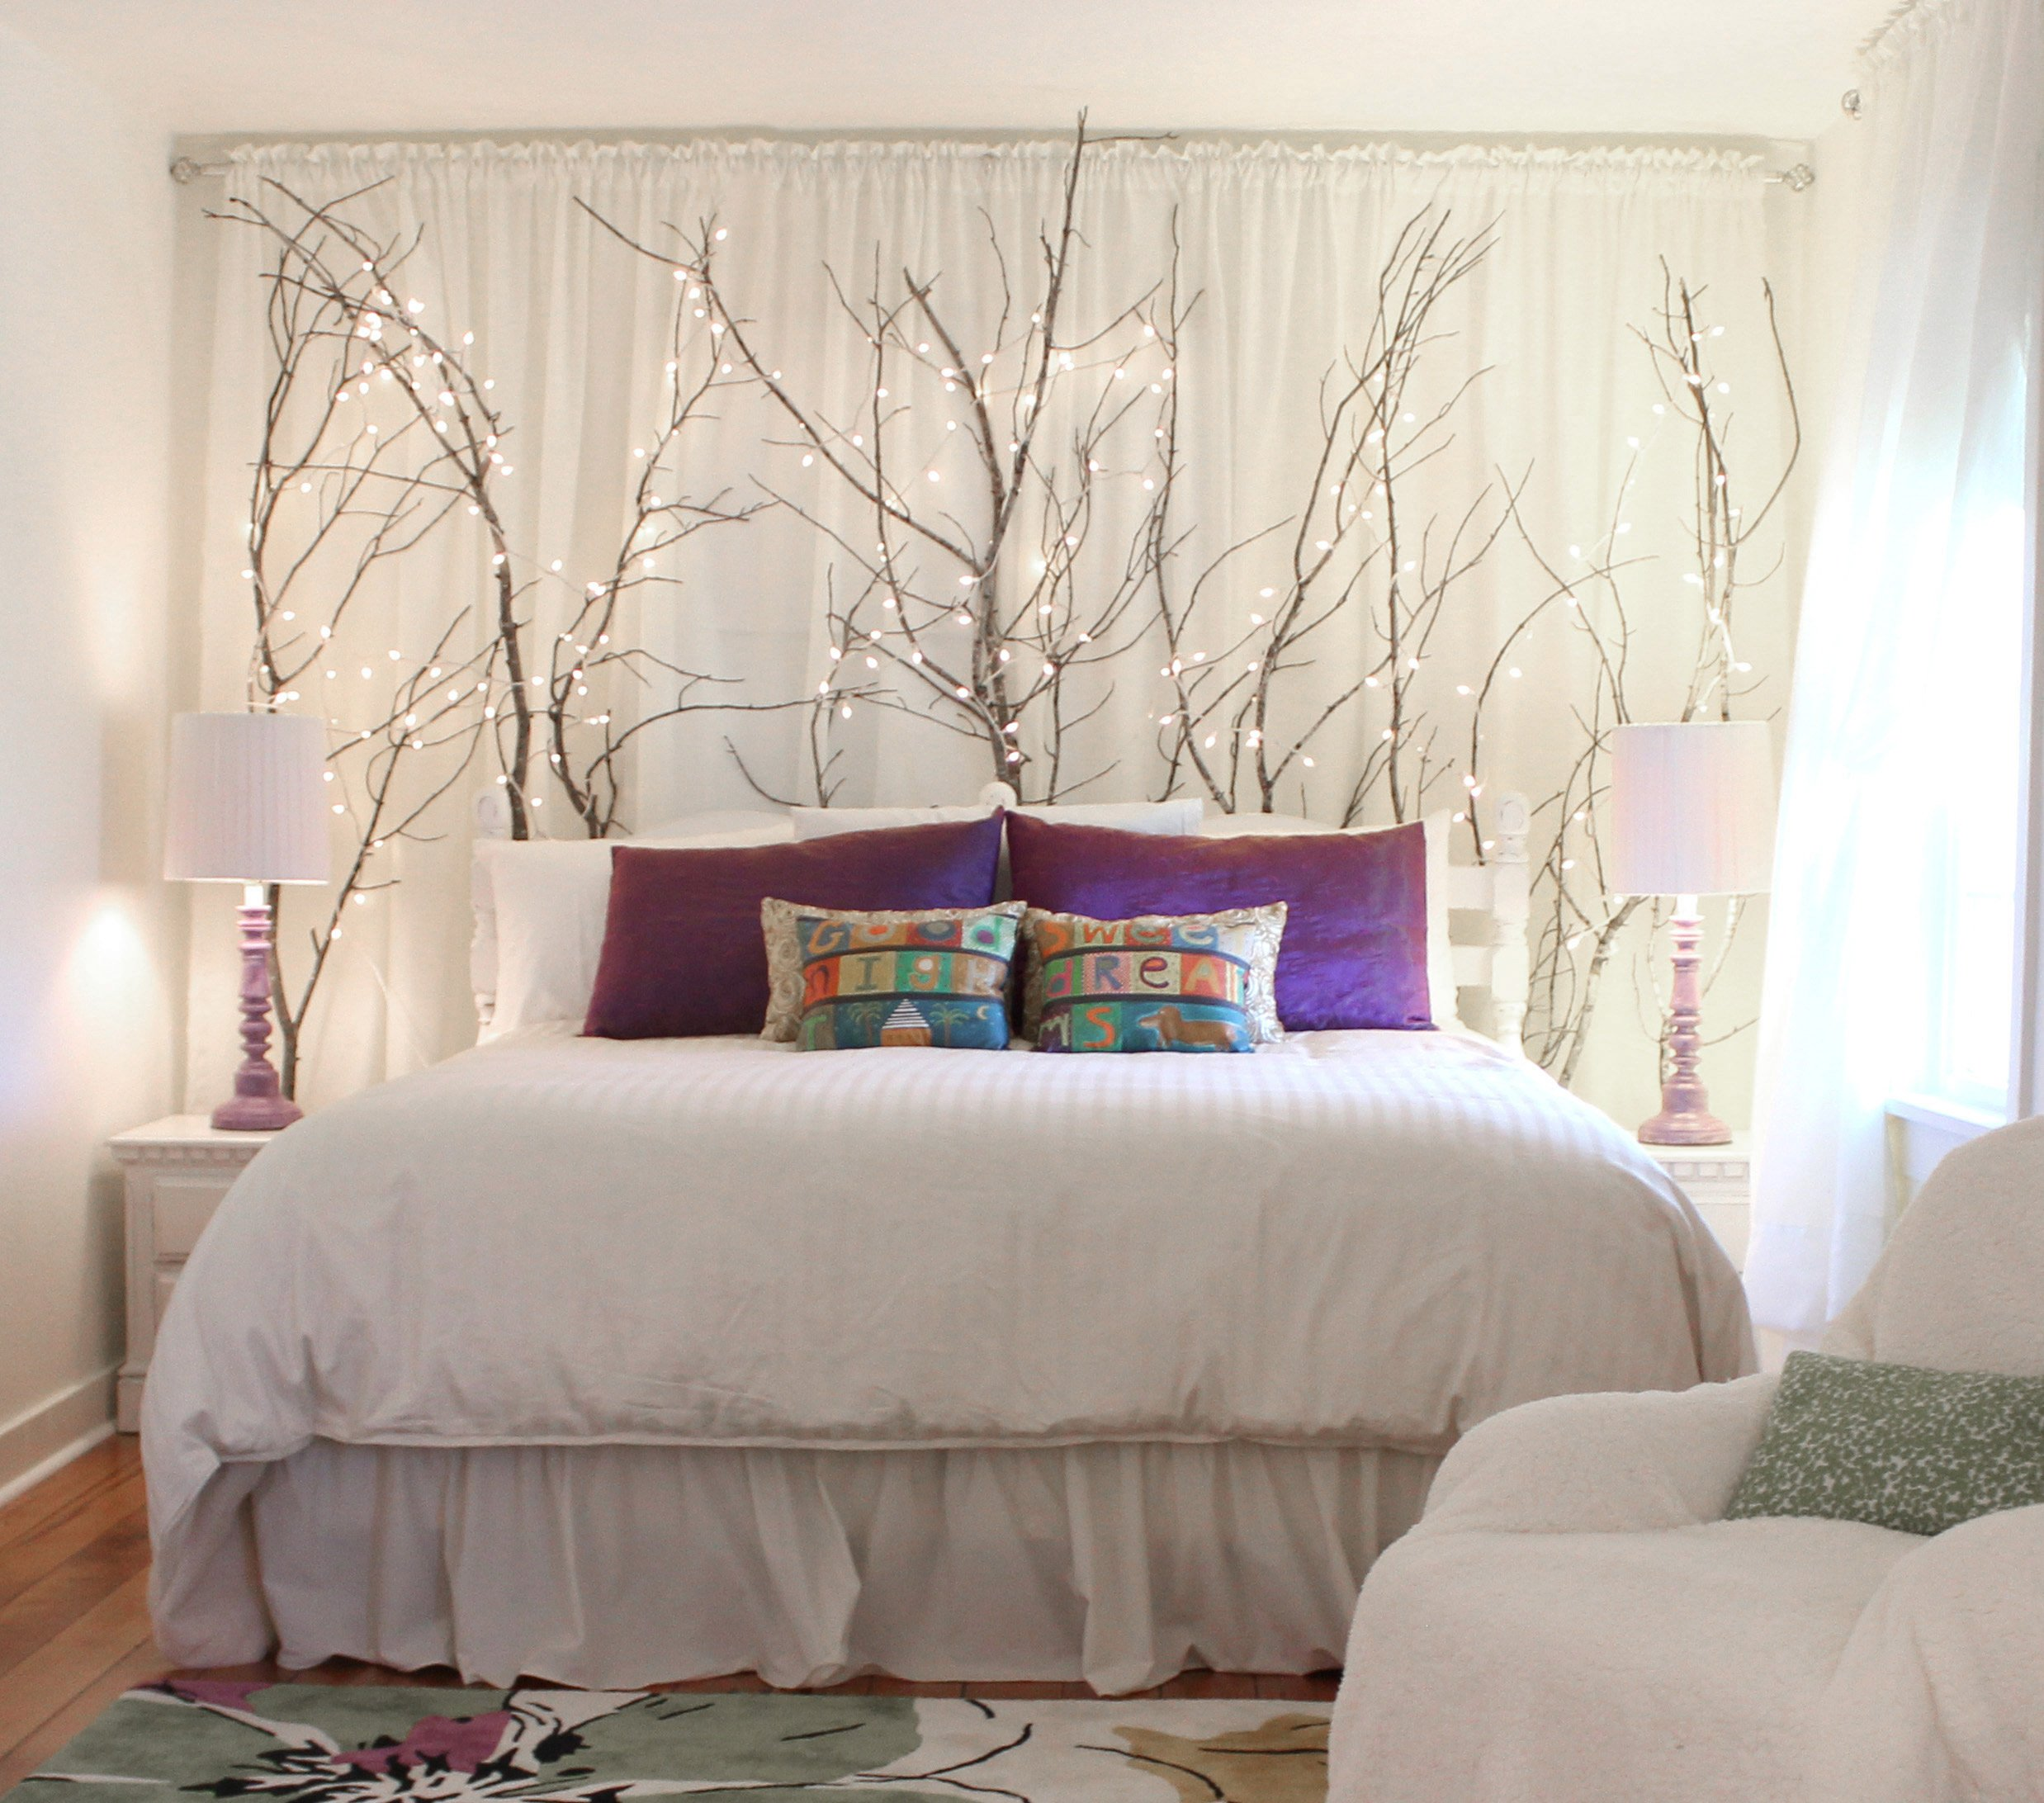 a bed with tree branches decorating the wall behind it and forming a headboard